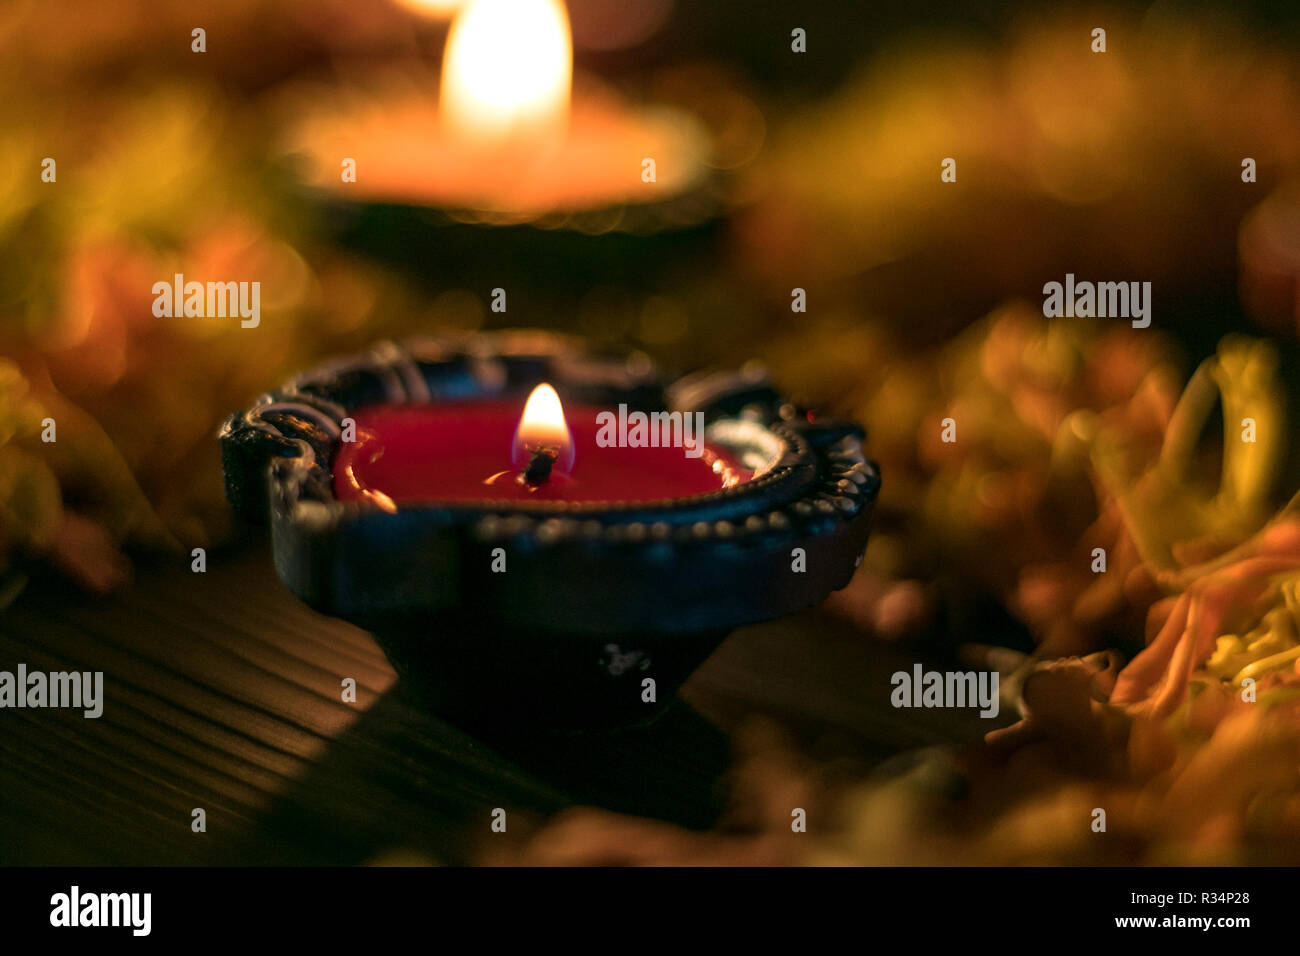 A close-up view of lit diya for celebrating diwali and dhanteras in Asia Stock Photo